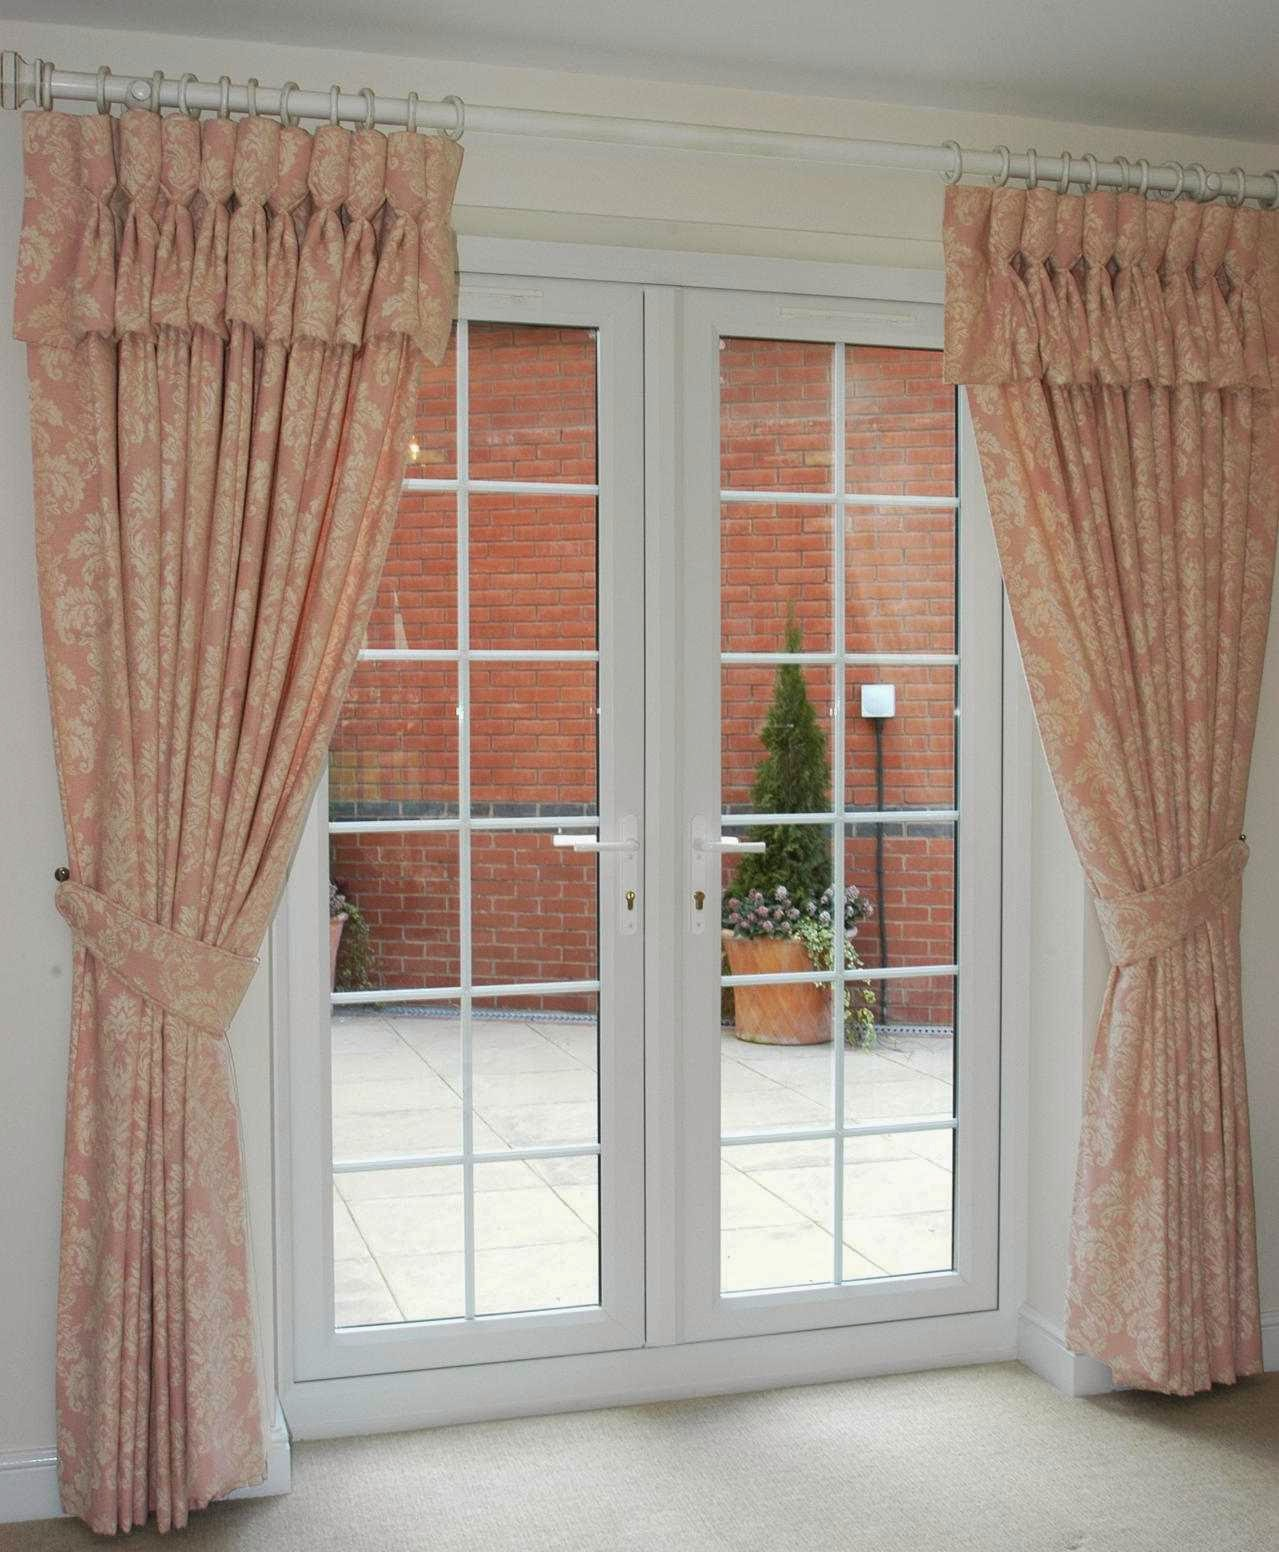 Window Treatments For French Doors  Home Design Ideas and Inspiration ...